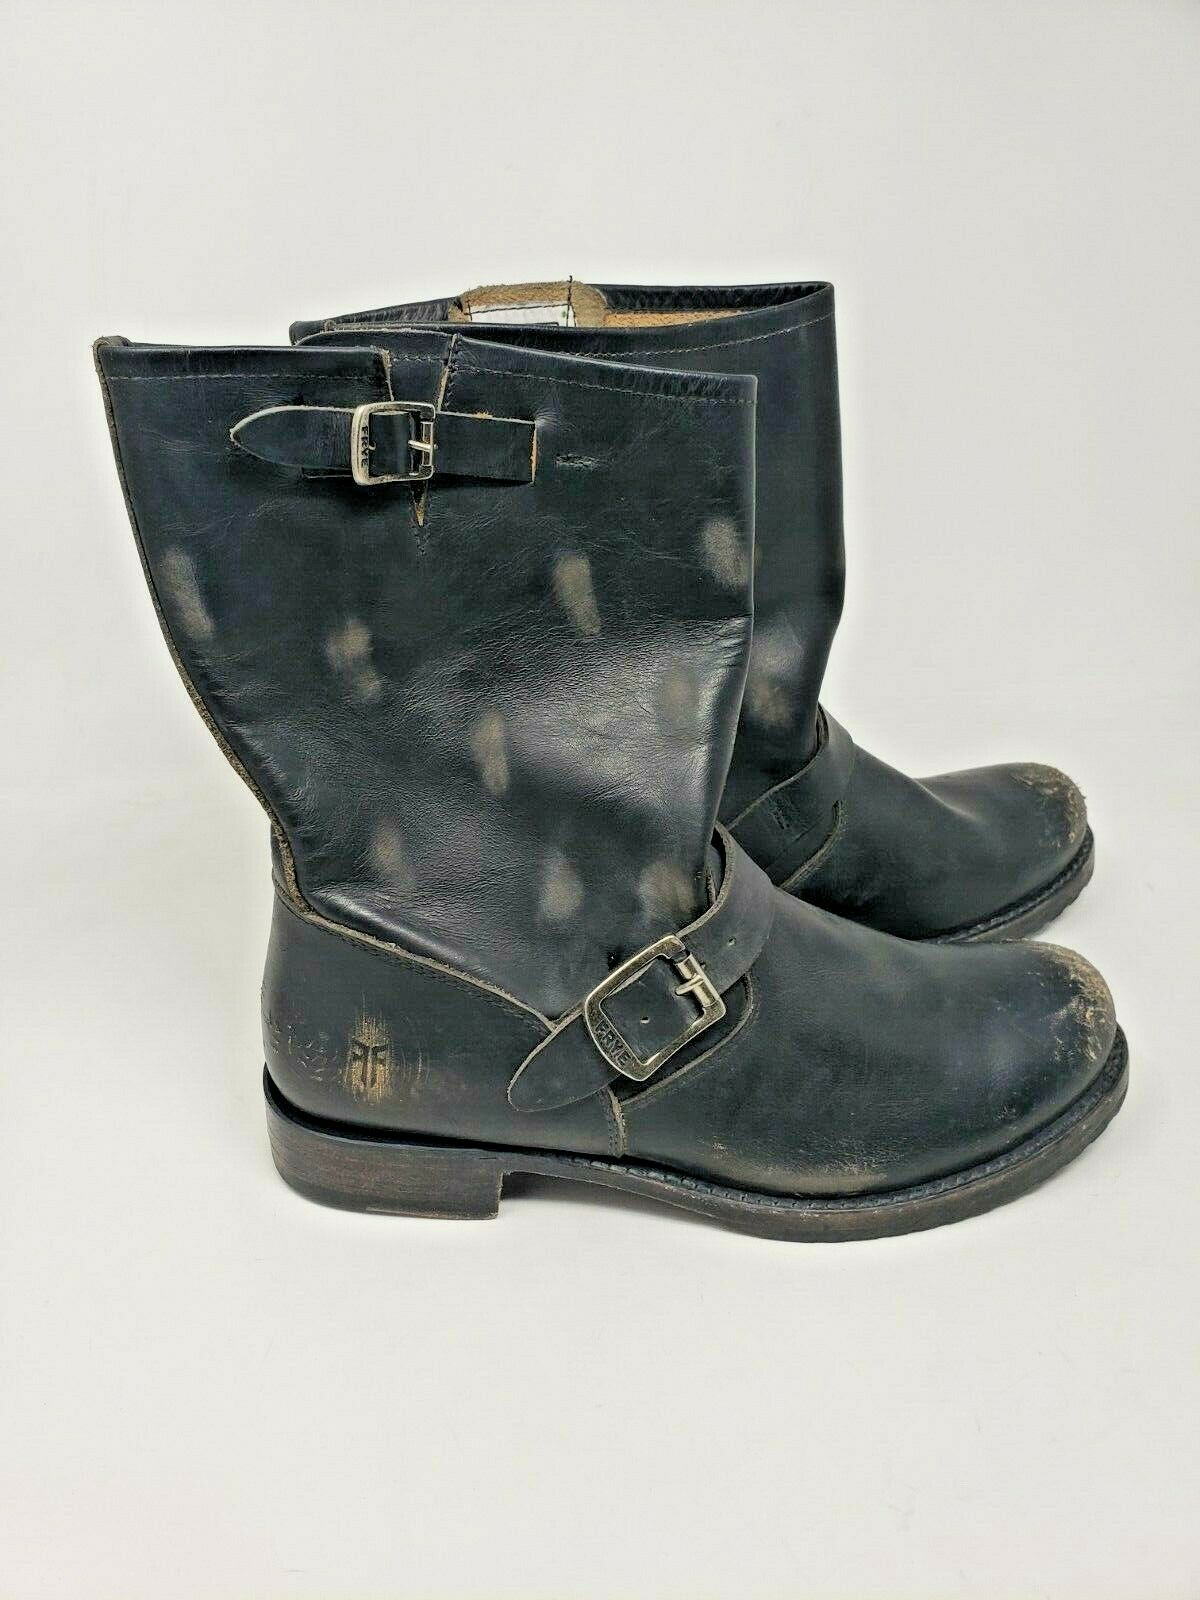 FRYE BLACK PRE-OWNED GREAT CONDITION MOTO BUCKLE VERONICA SHORT BOOT SIZE 10